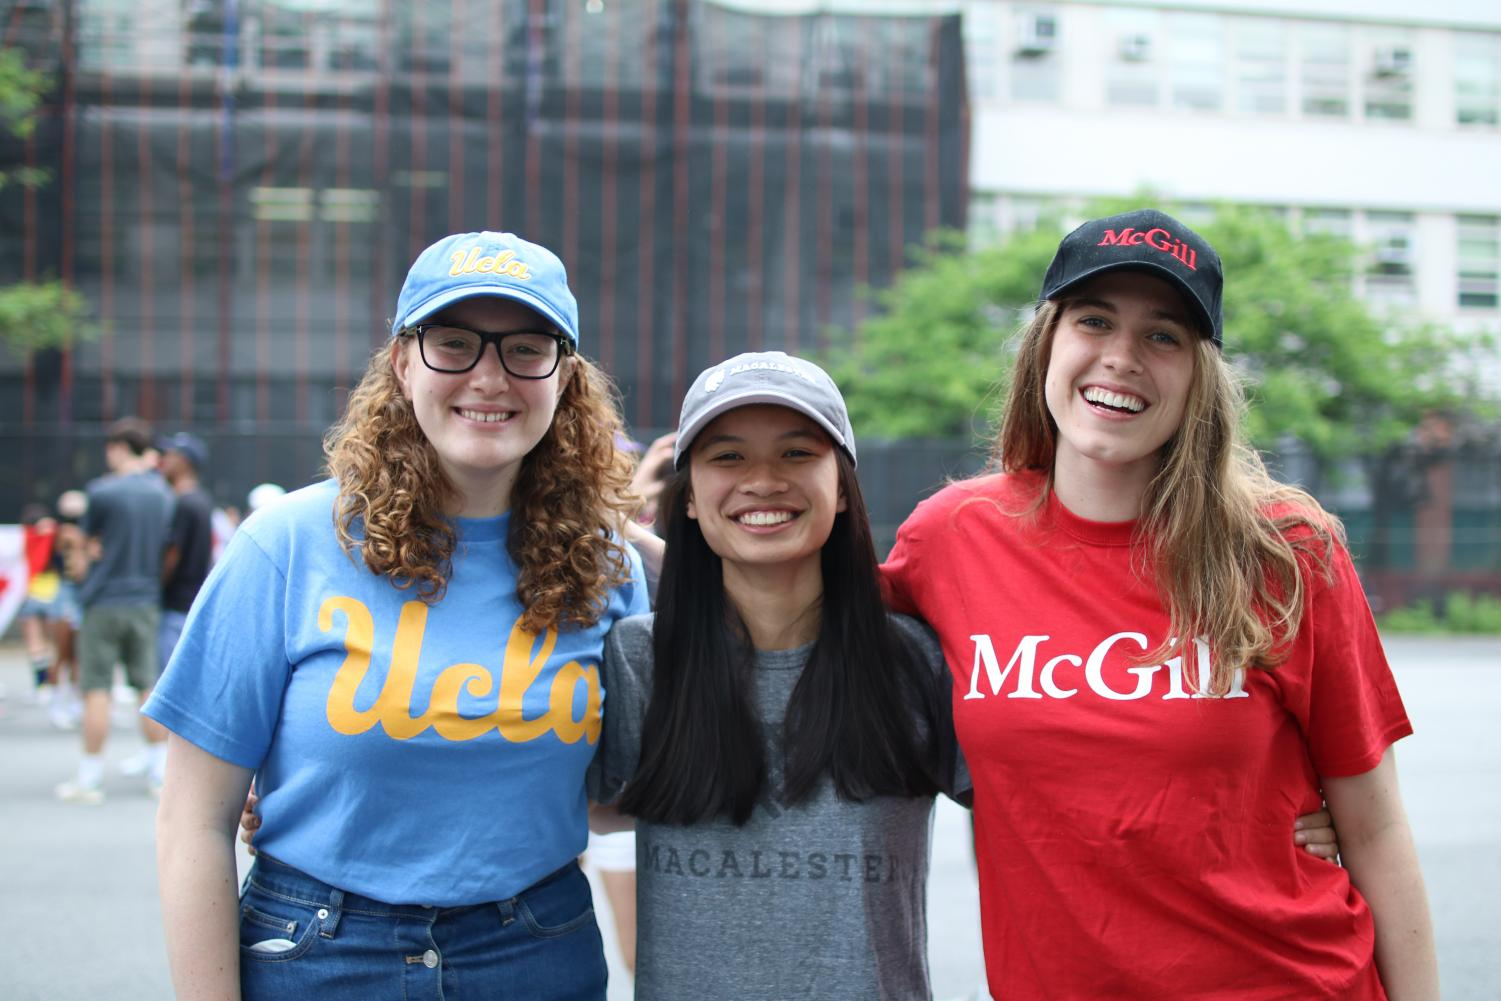 College Apparel Day Marks A New Beginning For The Class of